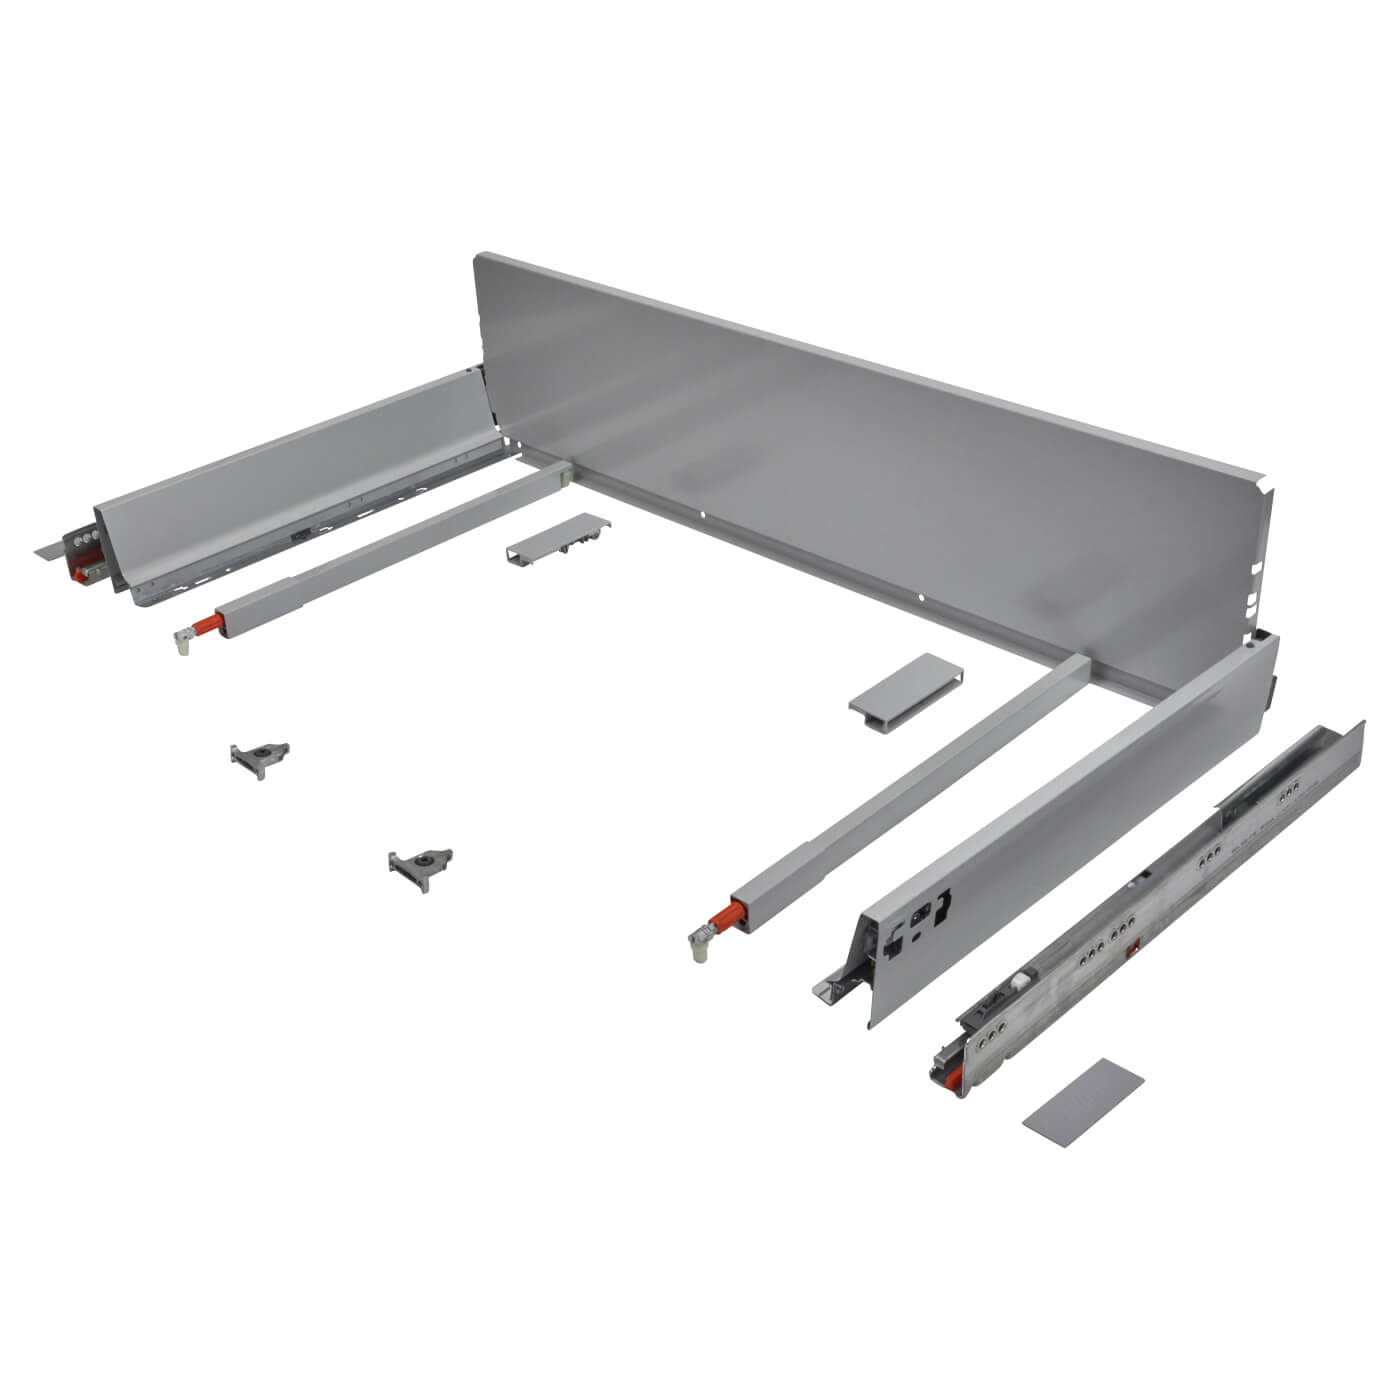 Blum TANDEMBOX ANTARO Pan Drawer - BLUMOTION Soft Close - (H) 203mm x (D) 270mm x (W) 1000mm - Grey)